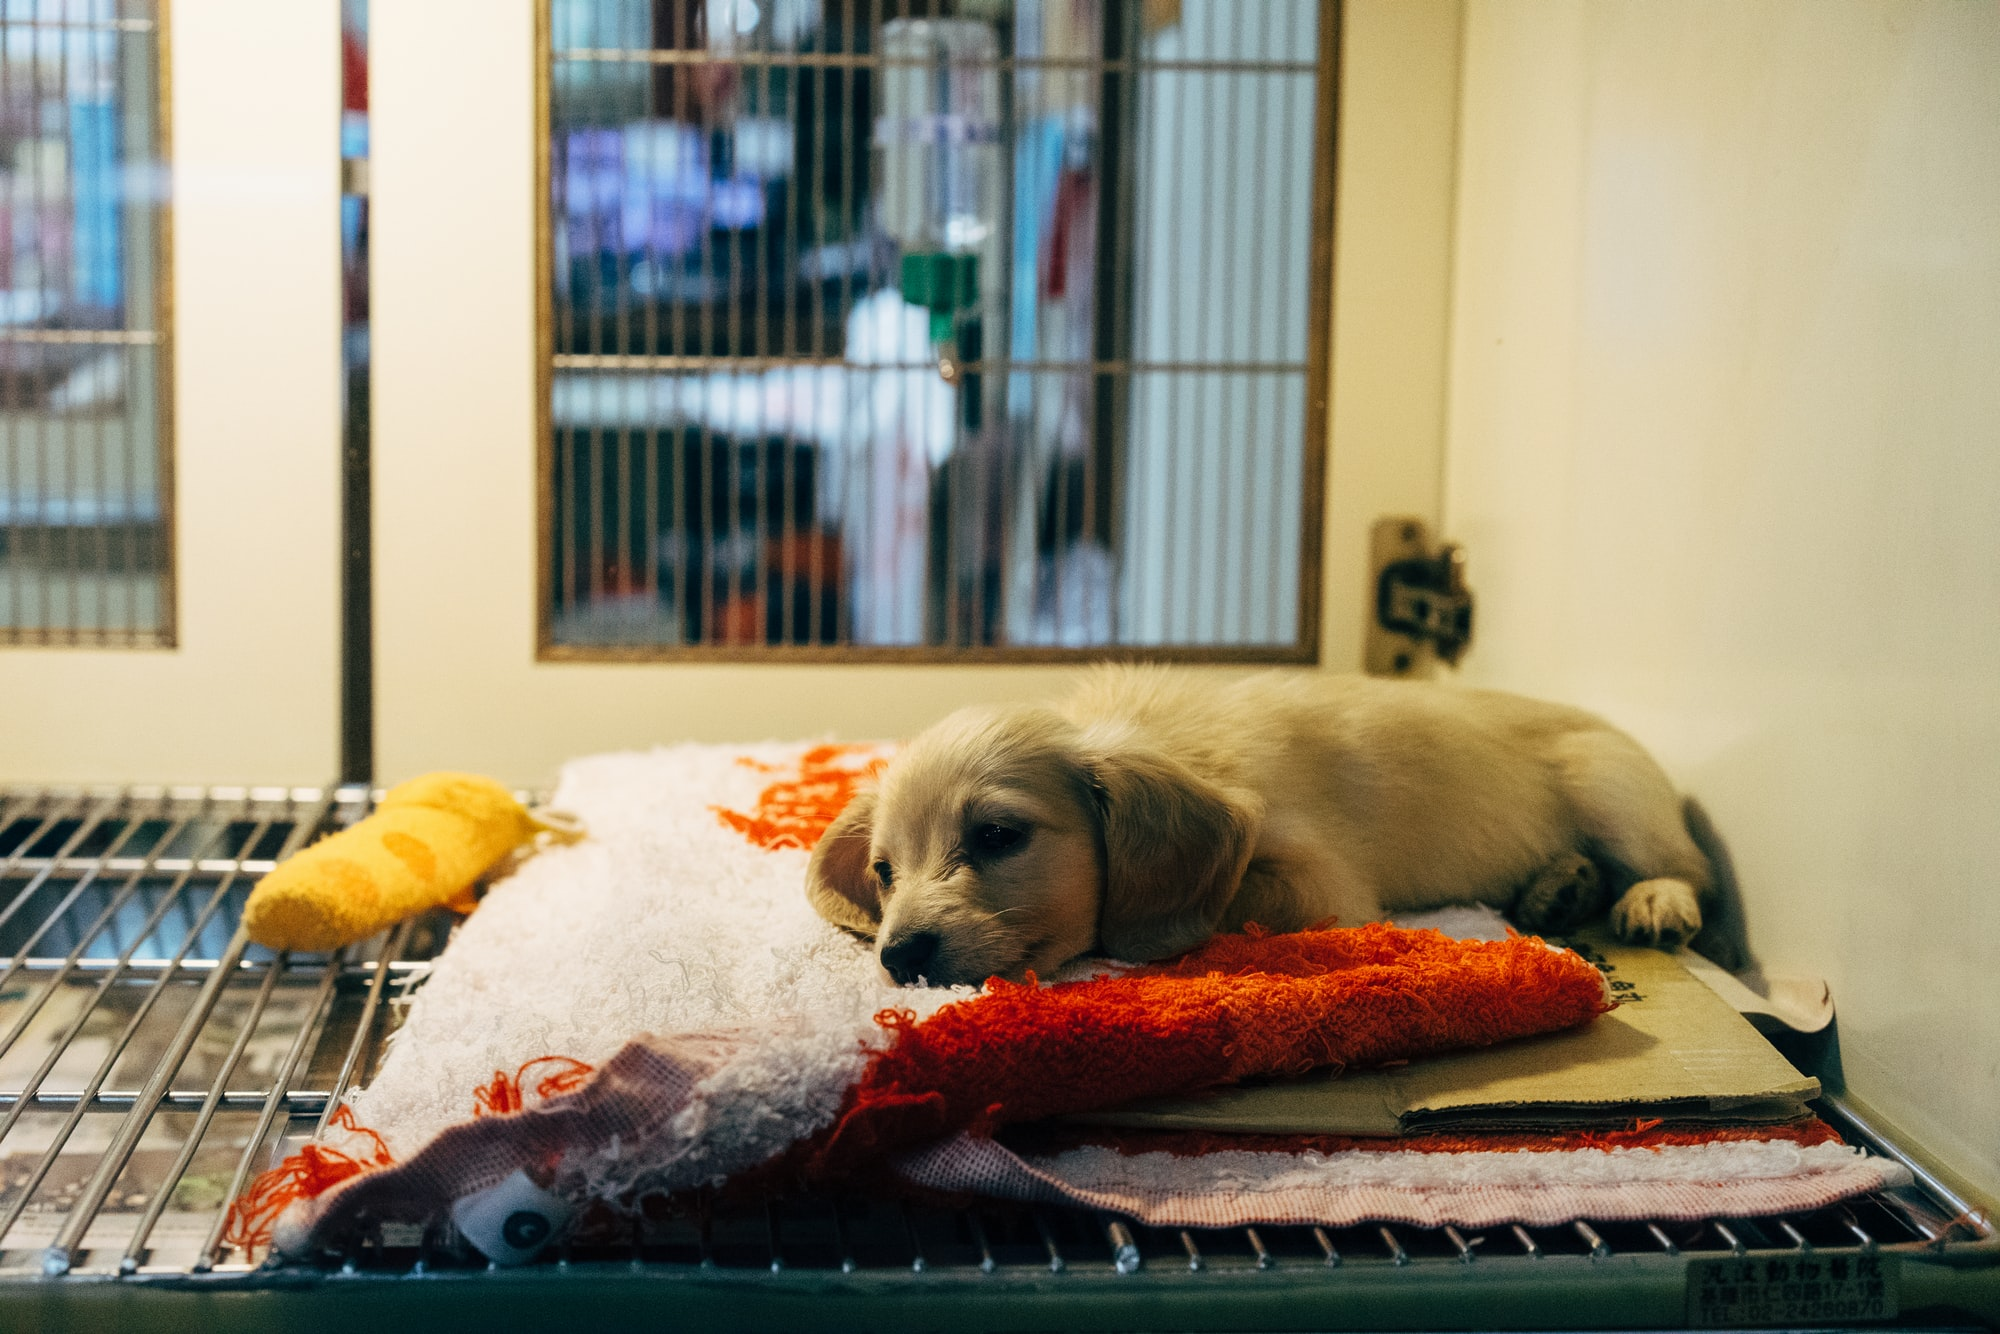 Doggy Seizures: 7 ways to keep your dog safe and calm.